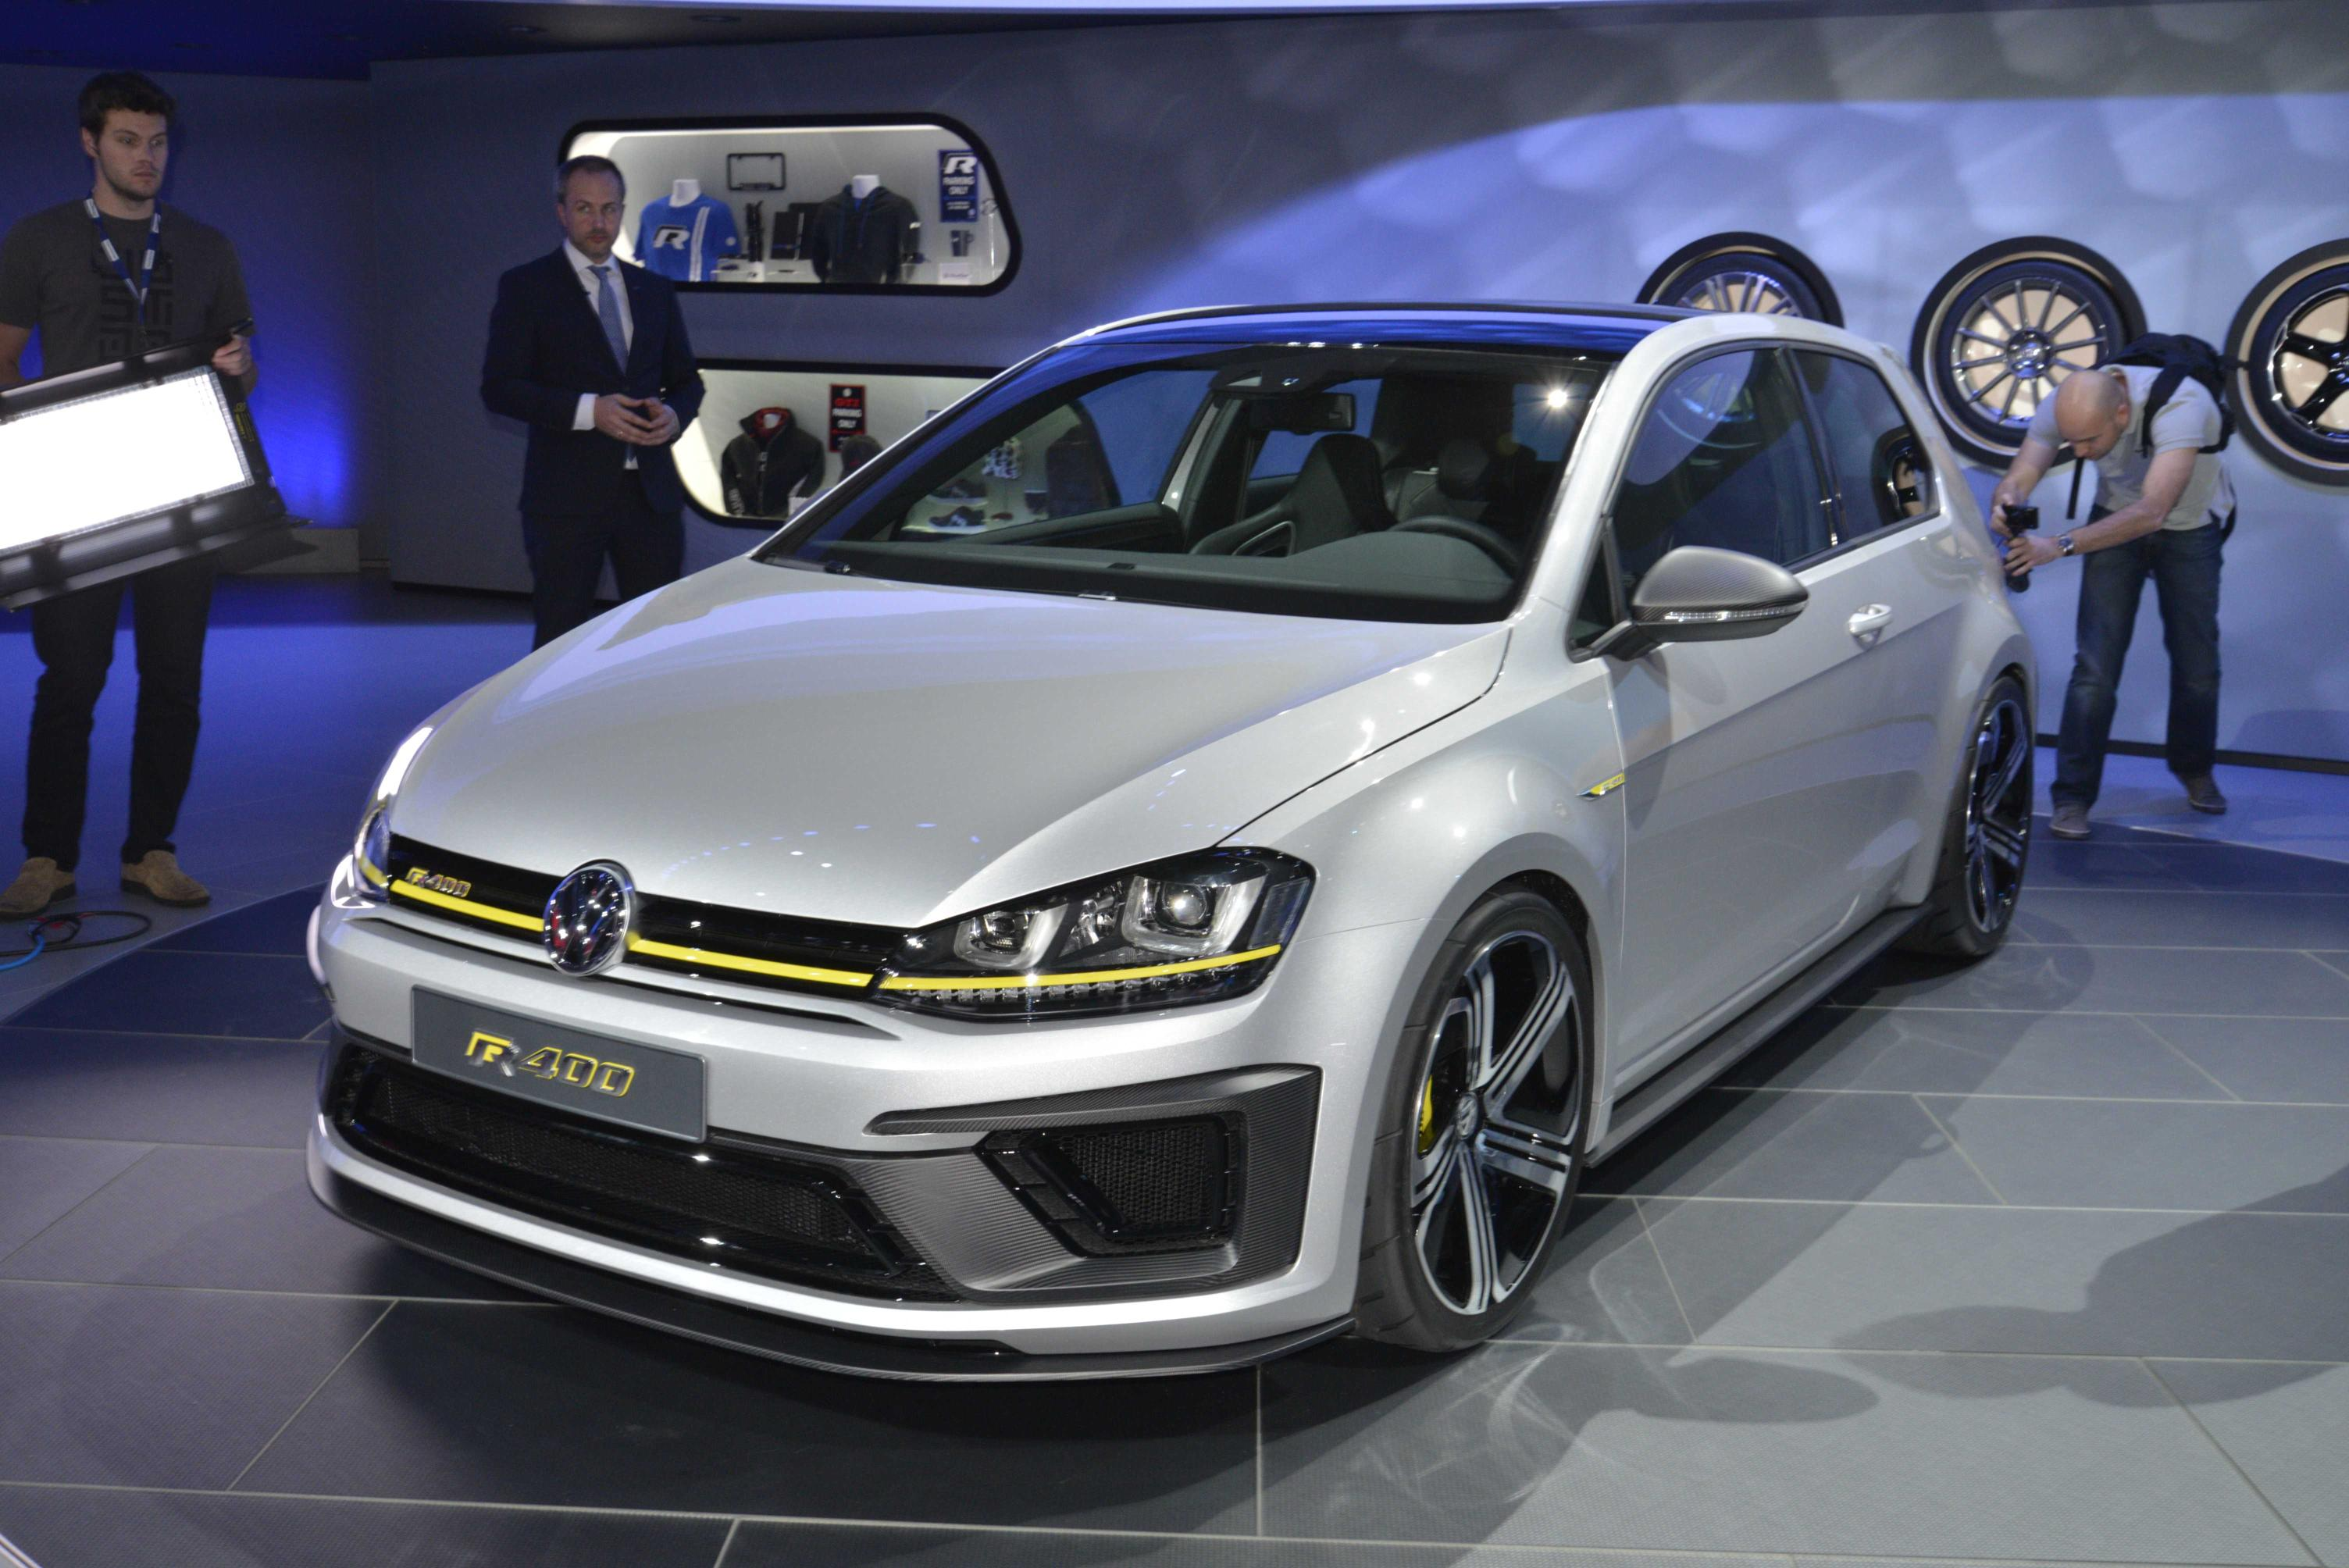 Golf GTI Roadster Makes Debut in LA, Needs to Go into Production [Live Photos] - autoevolution